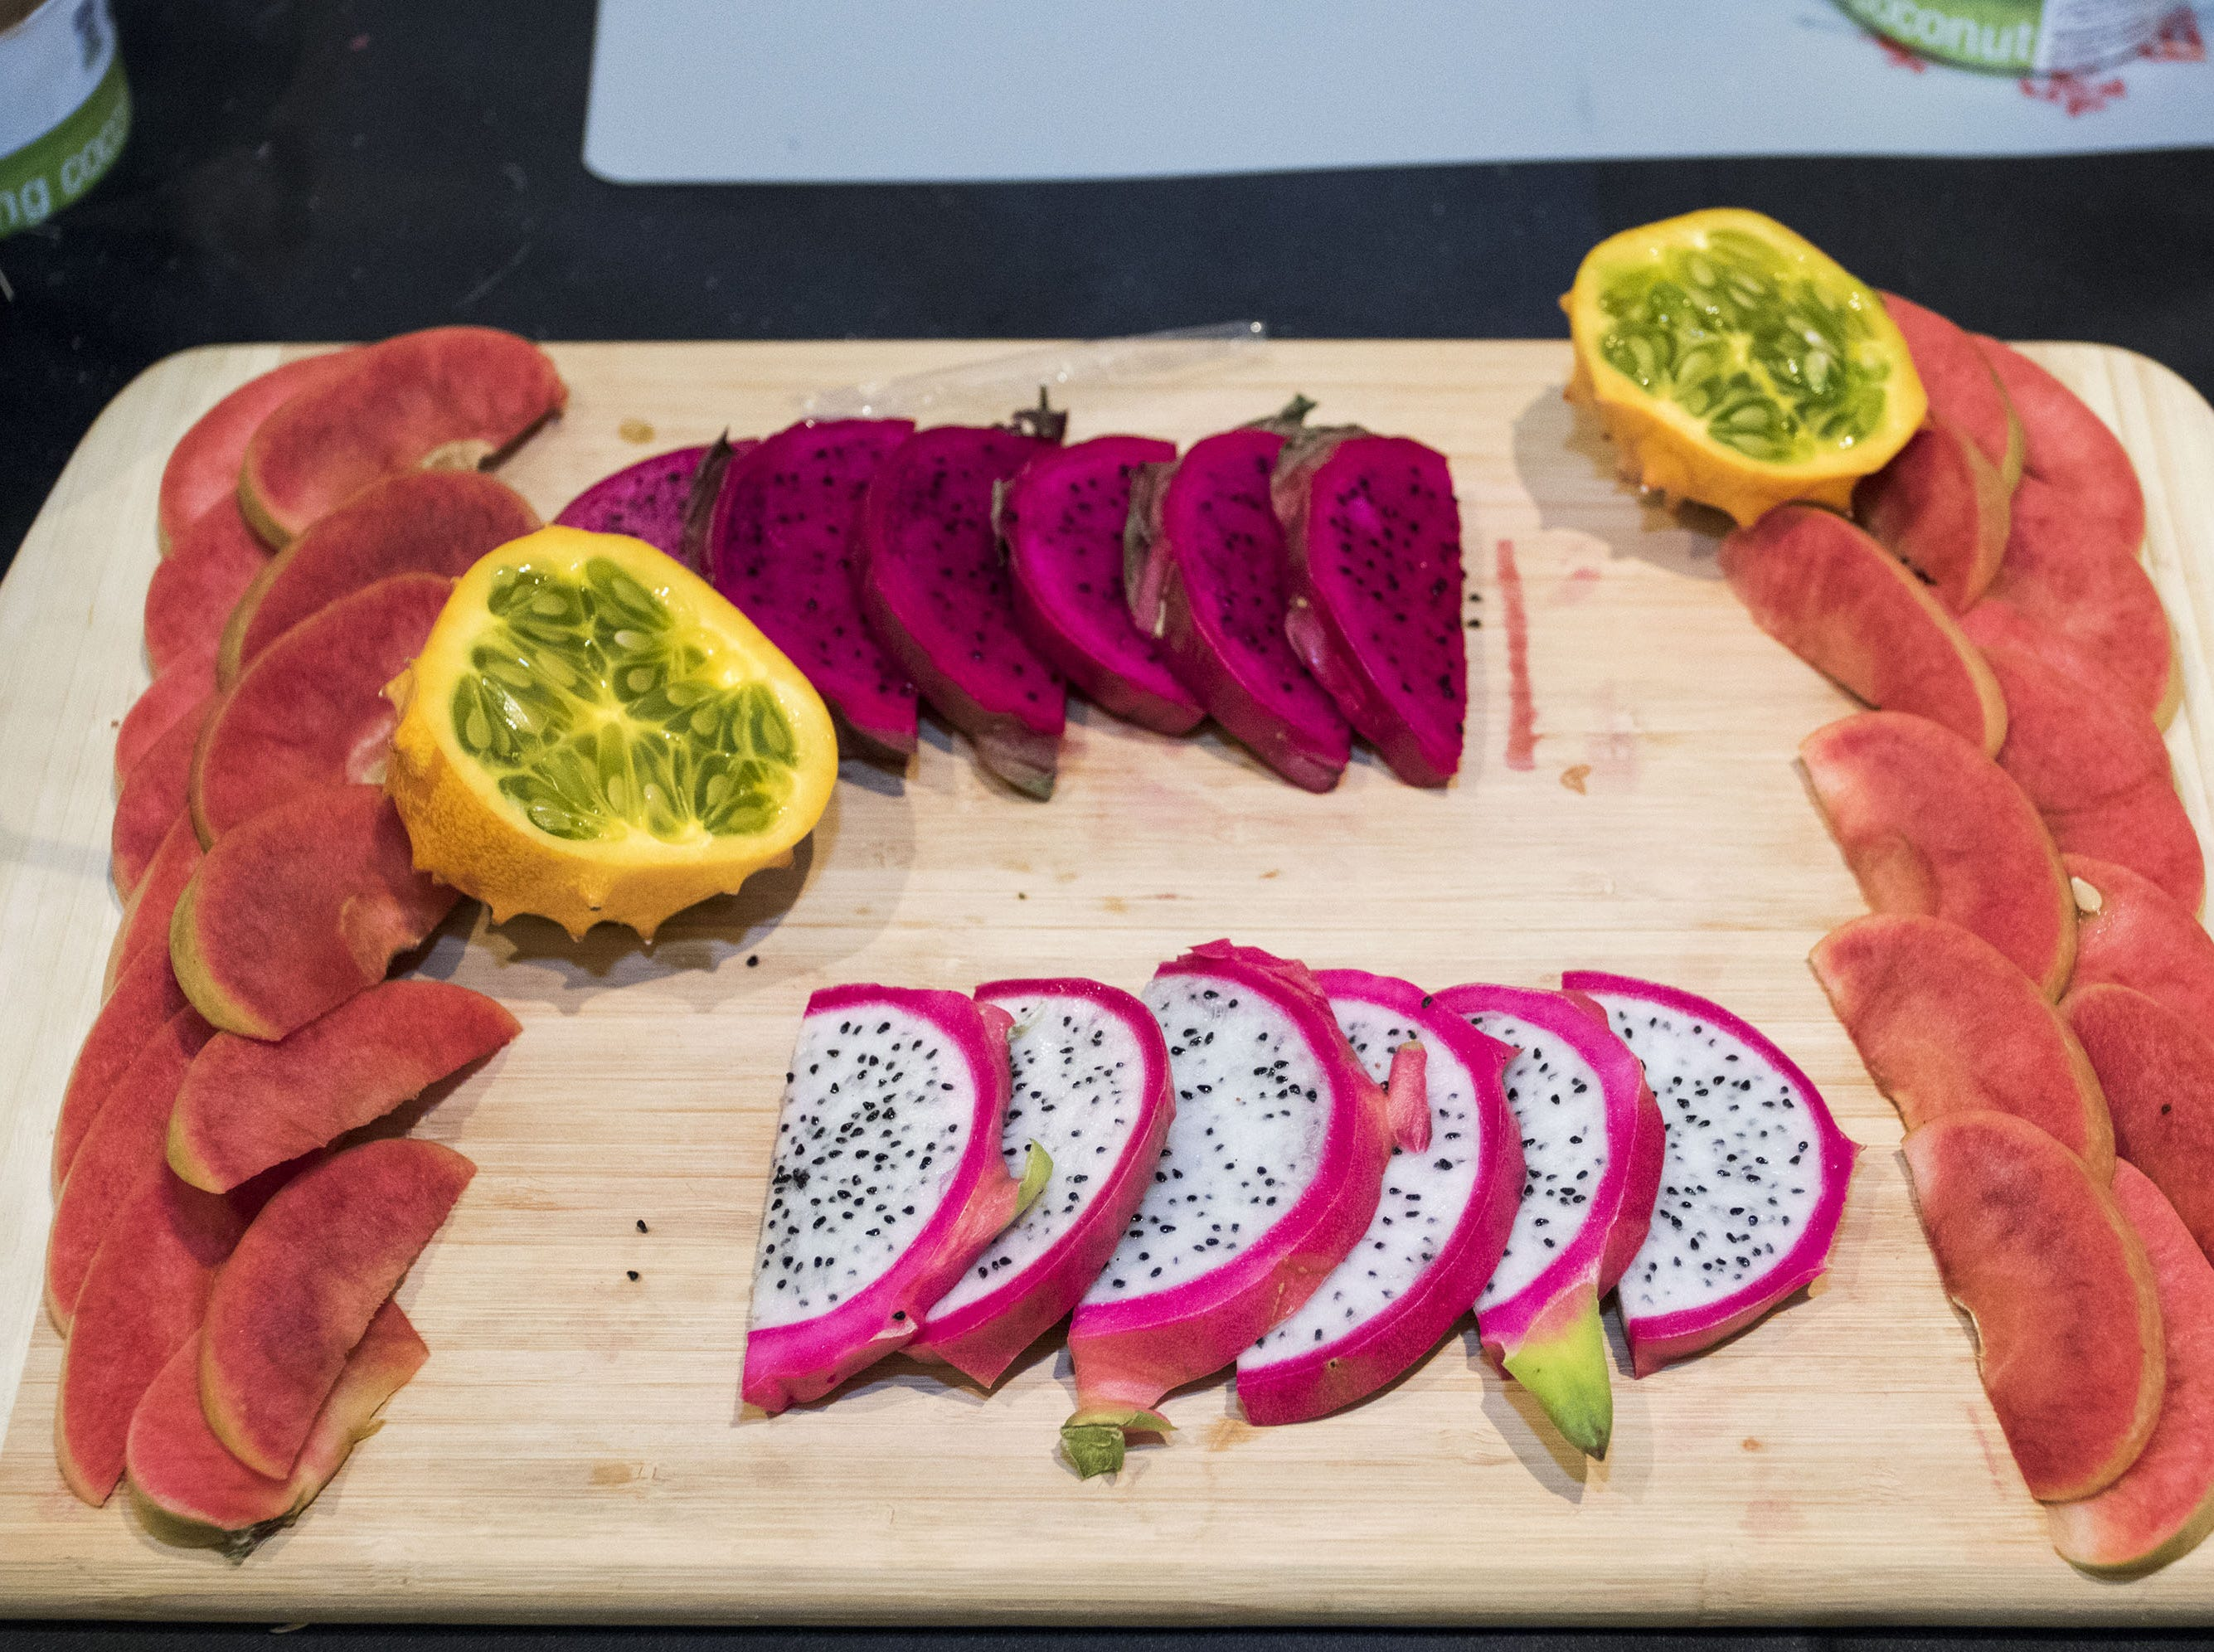 Exotic fruits were part of the VIP treatment during the azcentral Wine & Food Experience at WestWorld of Scottsdale, Saturday, Nov. 3, 2018.